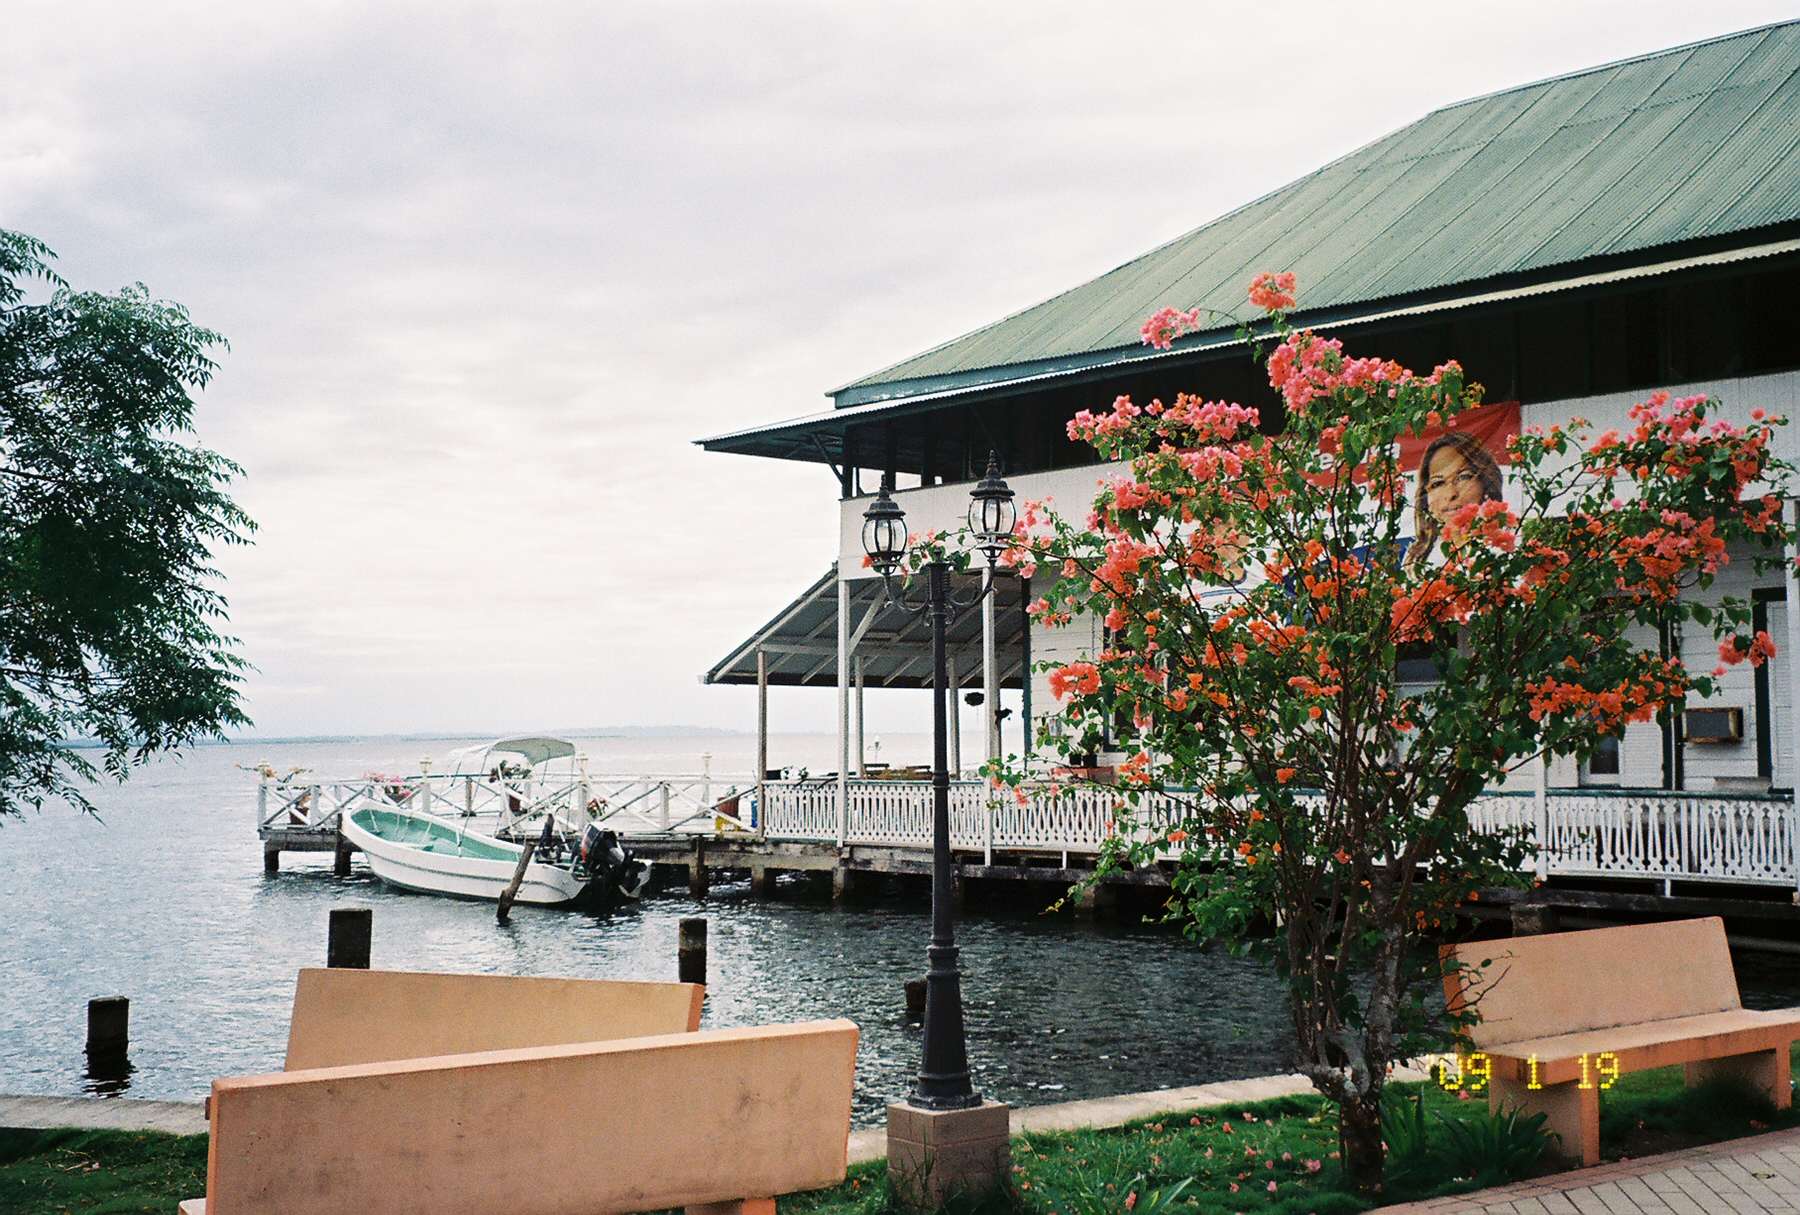 A restaurant on the water in Bocas Del Toro, Panama